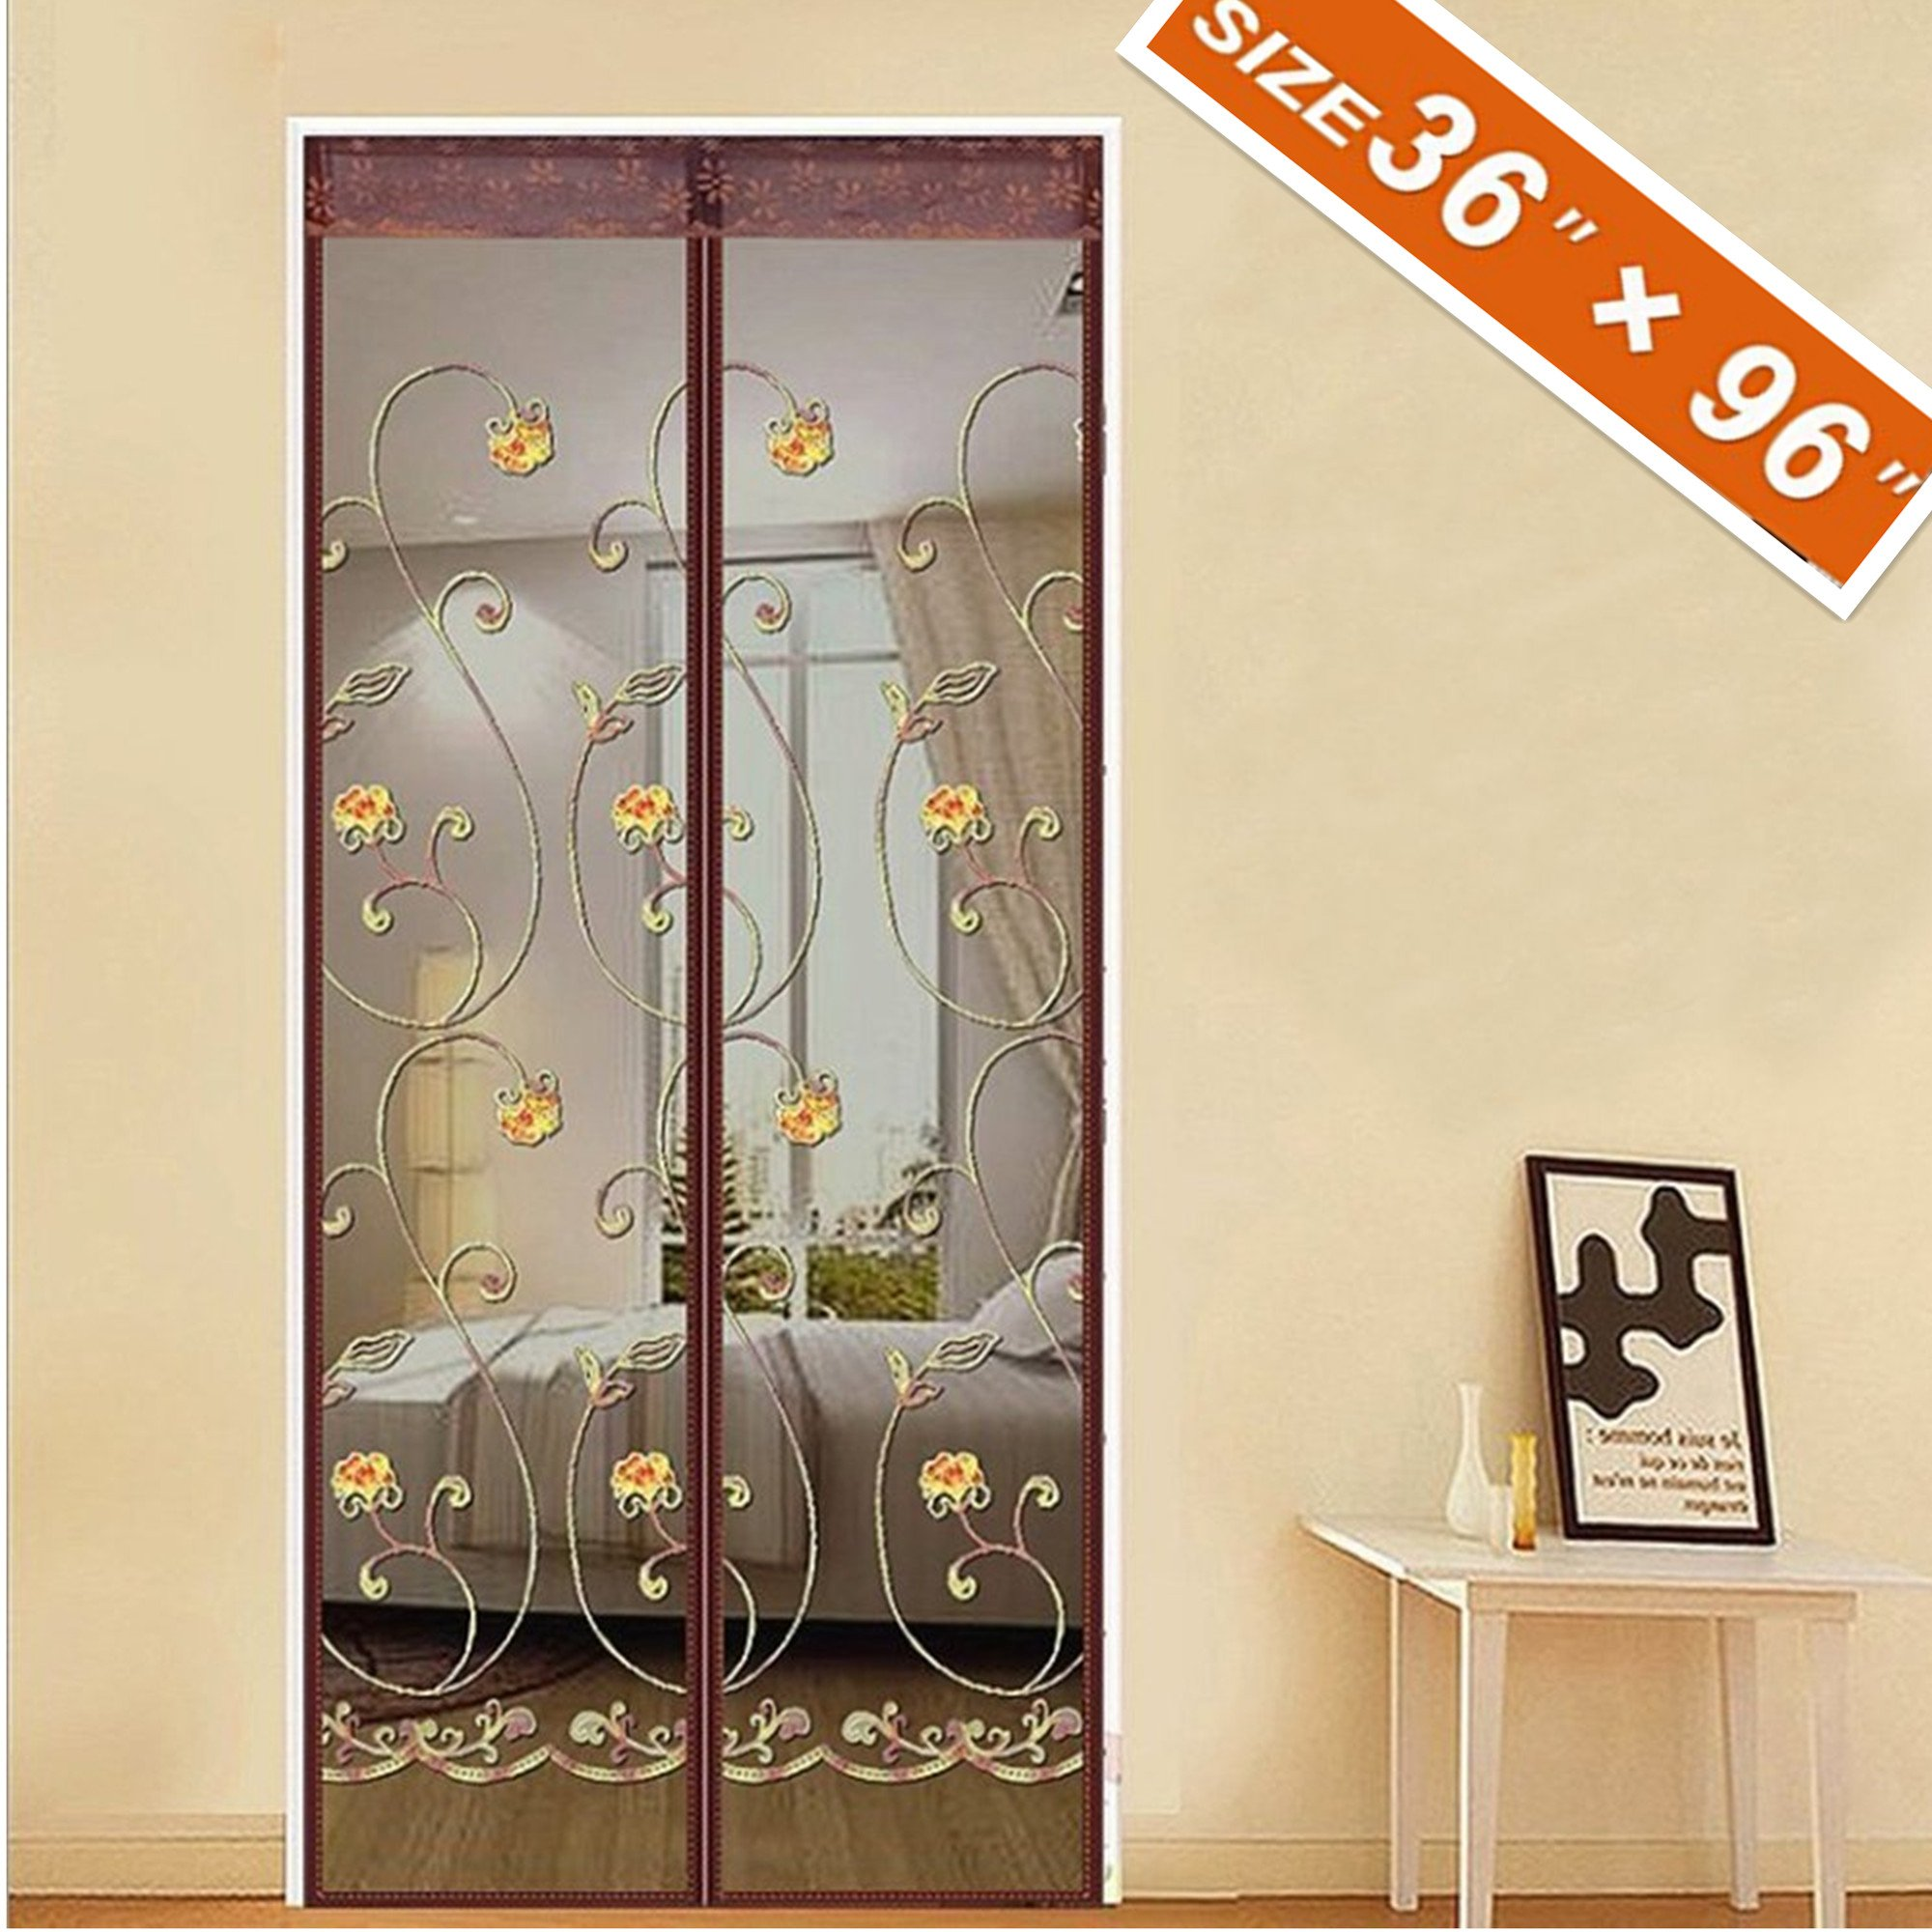 """Spritech Magnetic Screen Door 36 x 96, Mosquito Patio Screens Magic Door Mesh 36 X 96 Fit Doors Size Up to 34""""W X 95""""H Max with Full Frame Velcro French Back Door Curtain Keep Fly Bug Out"""